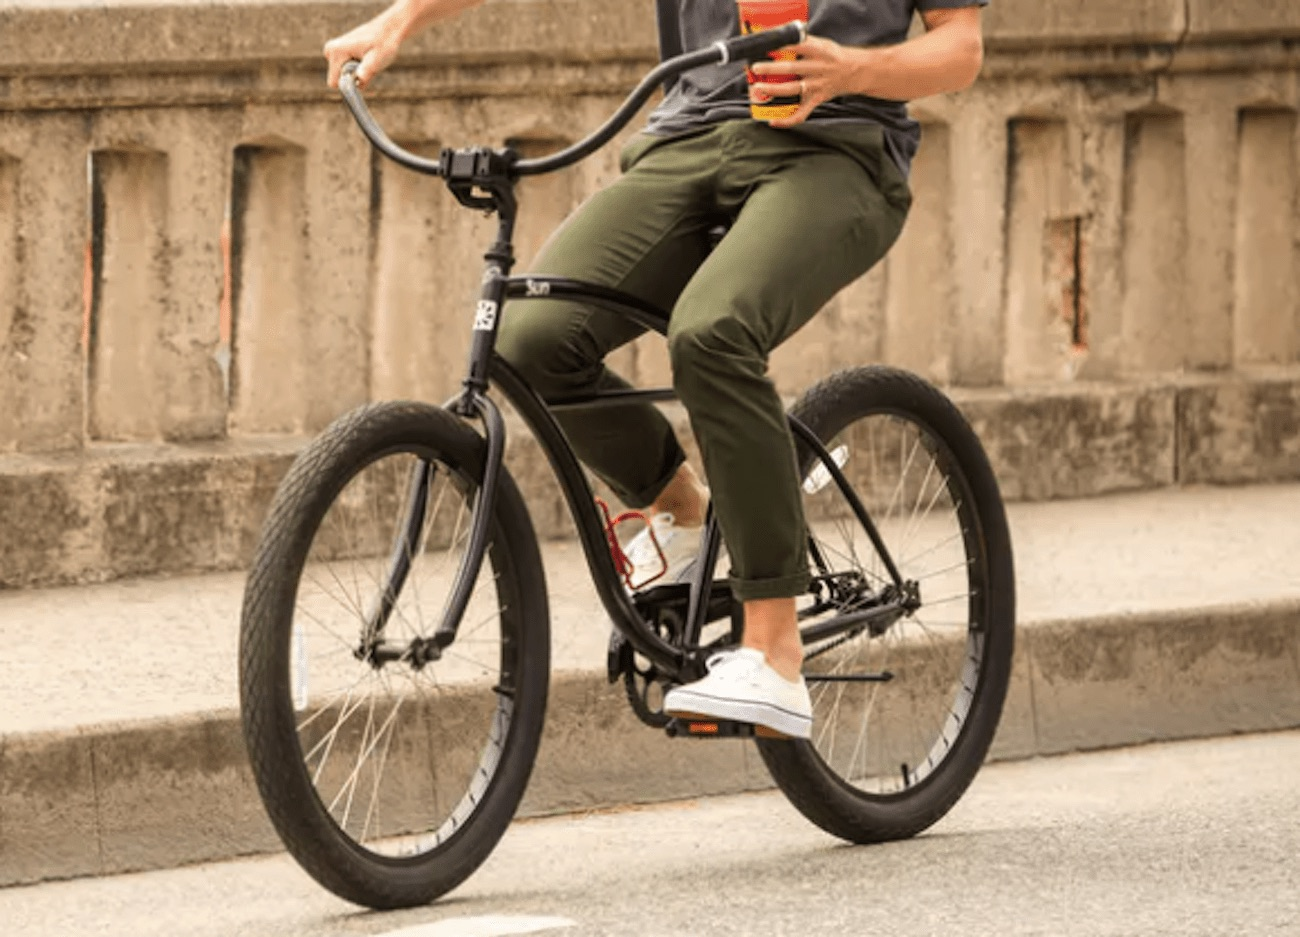 Flint and Tinder Cool Chino Pants » Gadget Flow